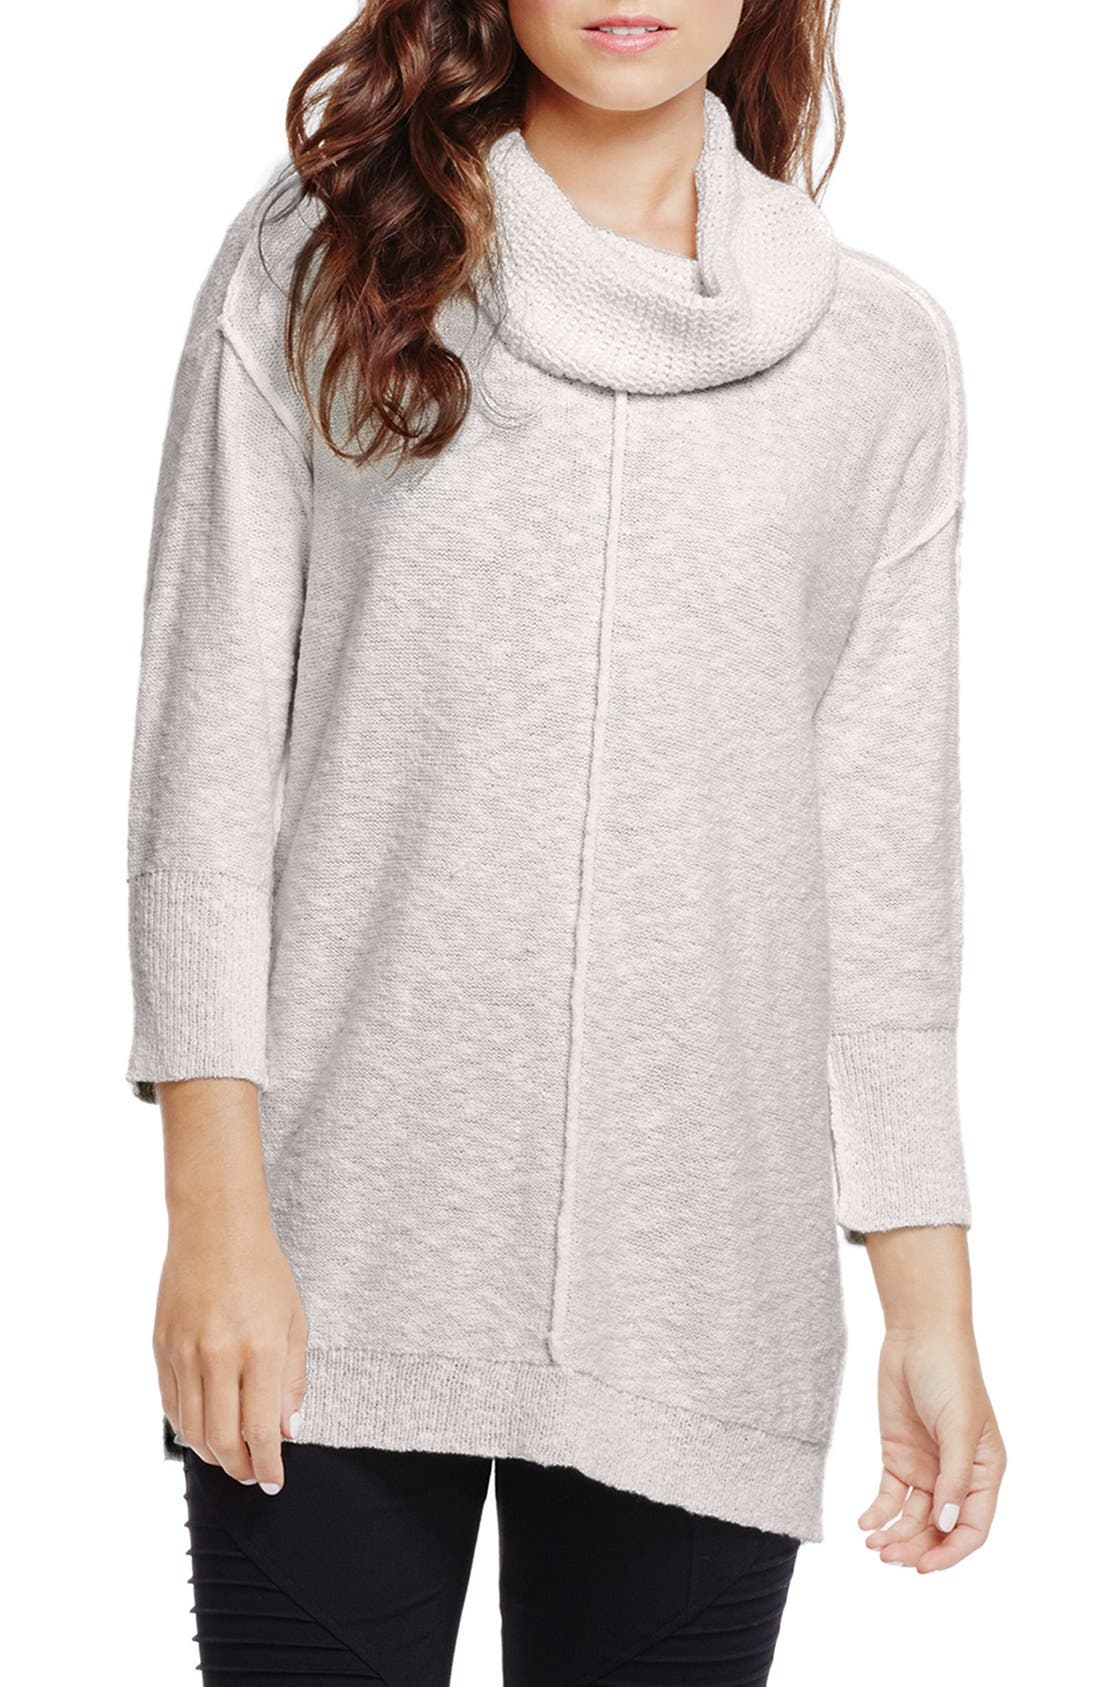 Alternate Image 1 Selected - Two by Vince Camuto Exposed Seam Cowl Neck Pullover